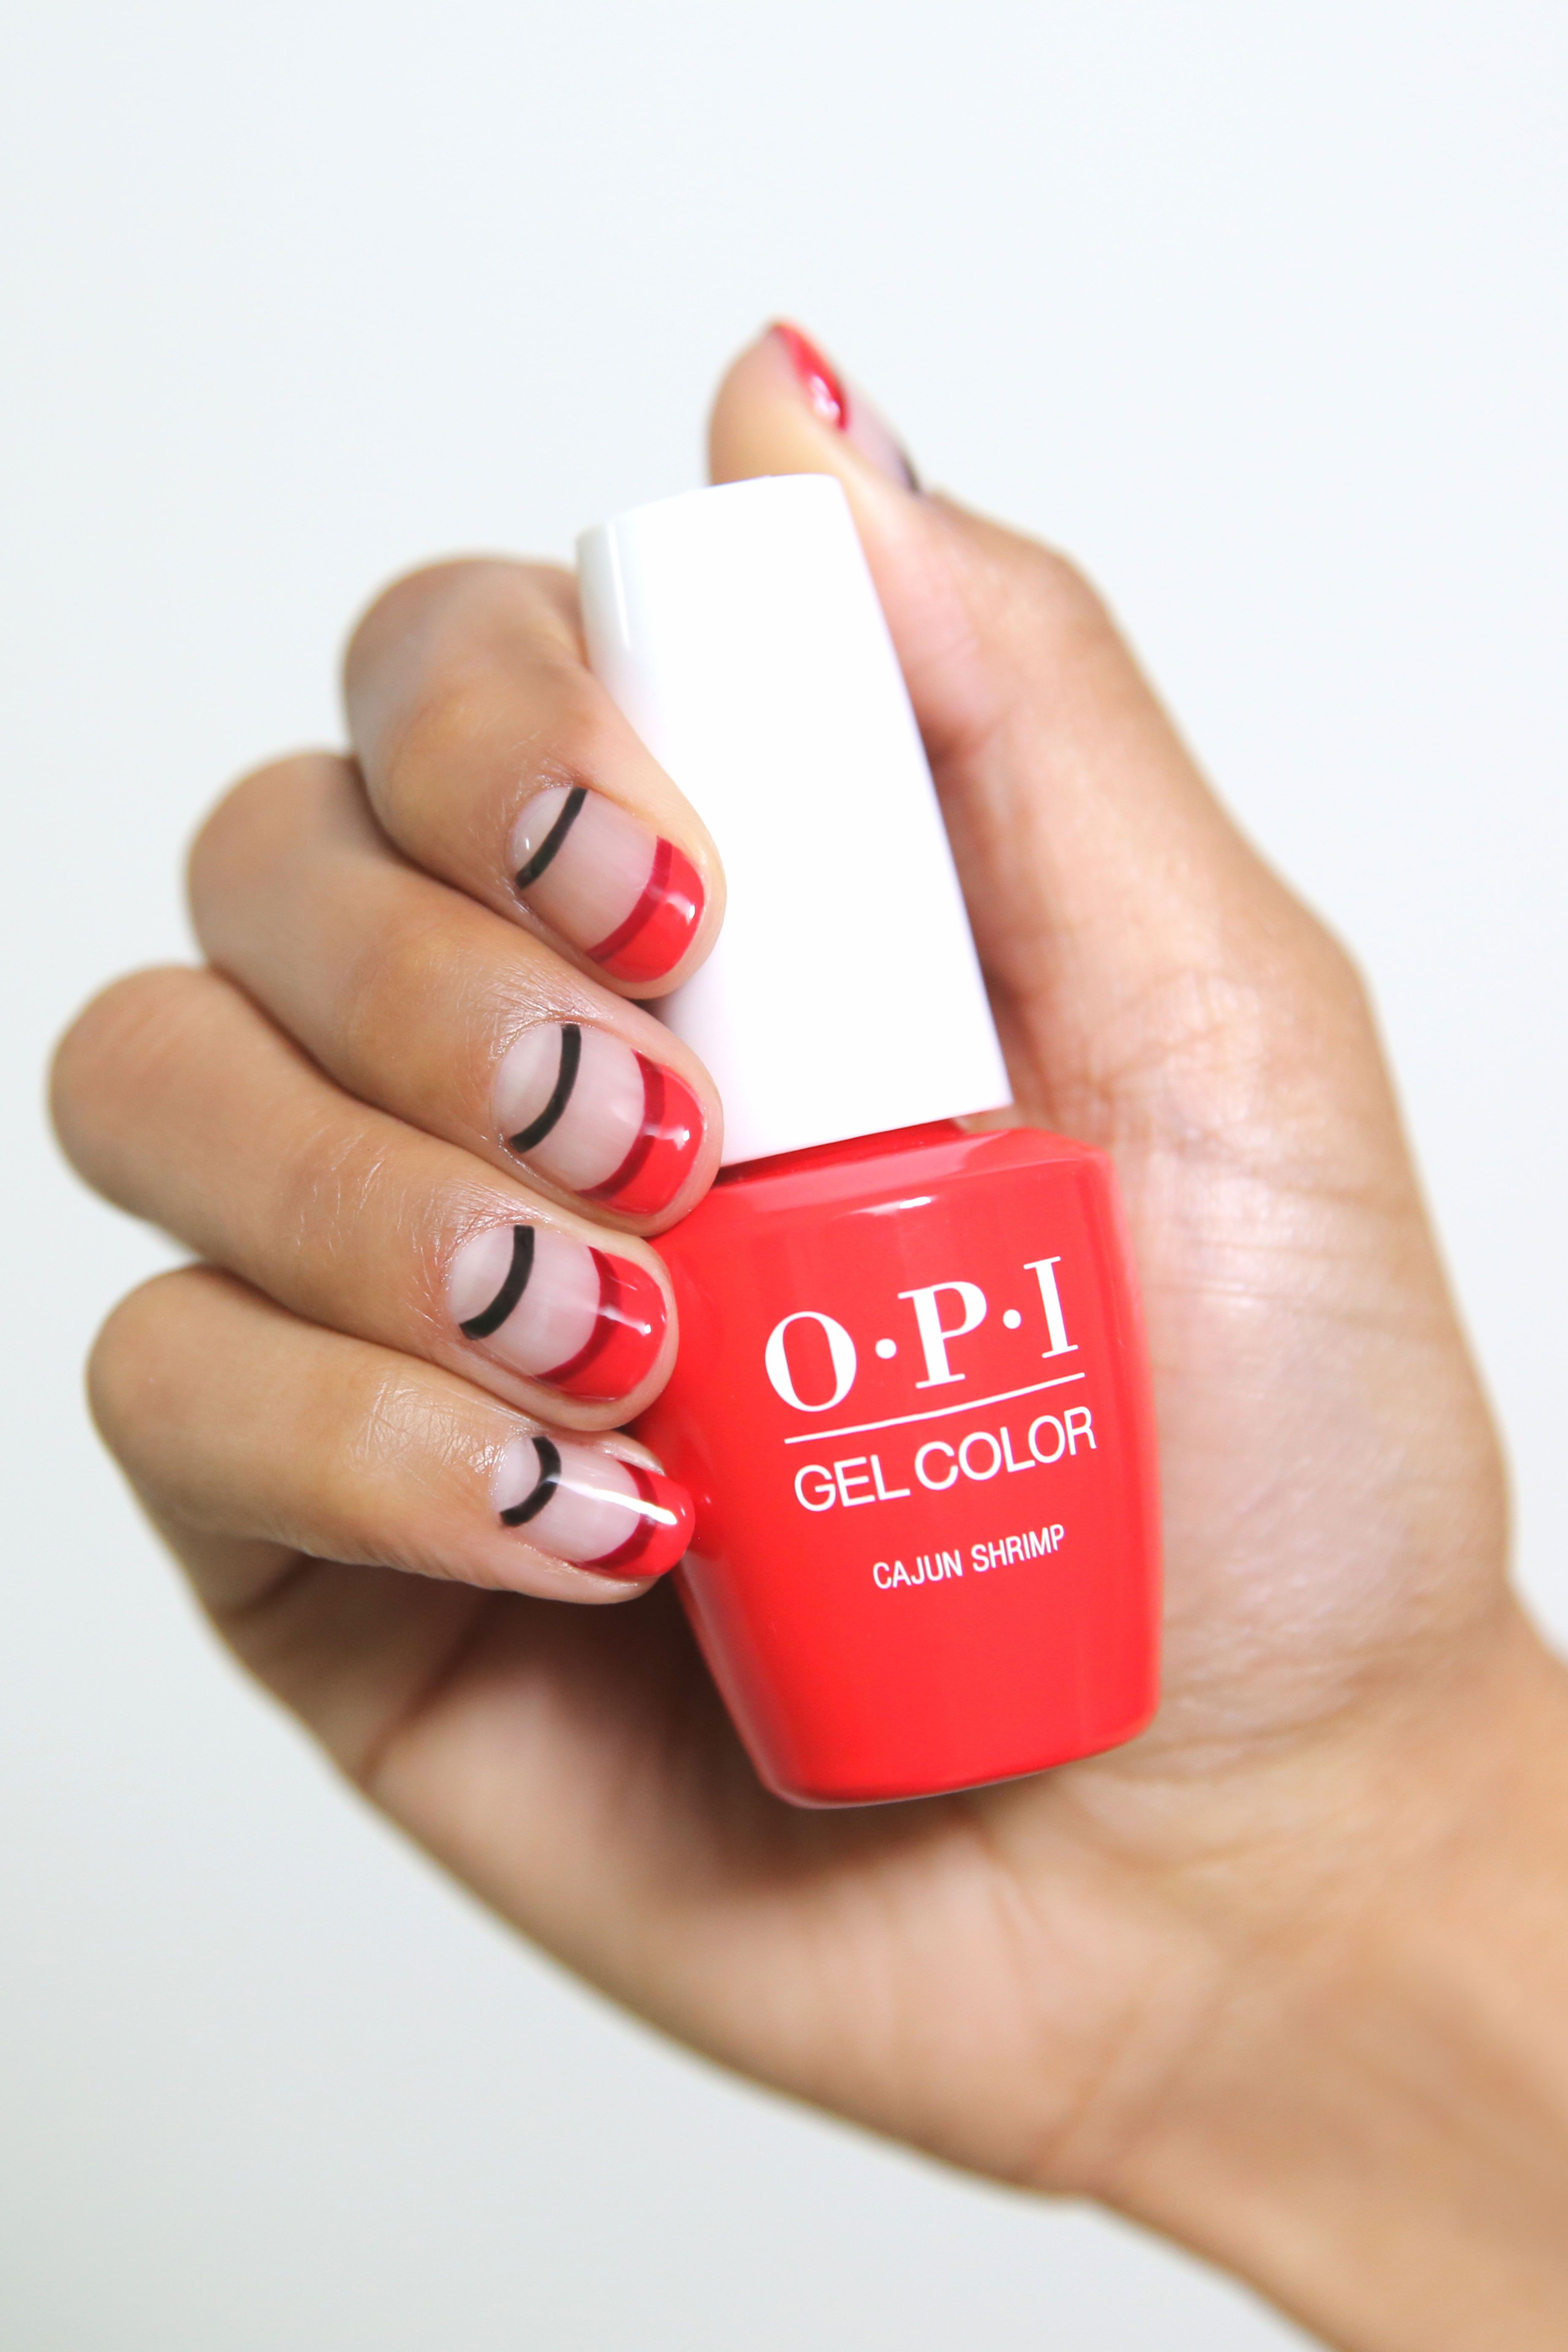 The fun part: OPI Nail Art using our new GelColor formula looks by ...